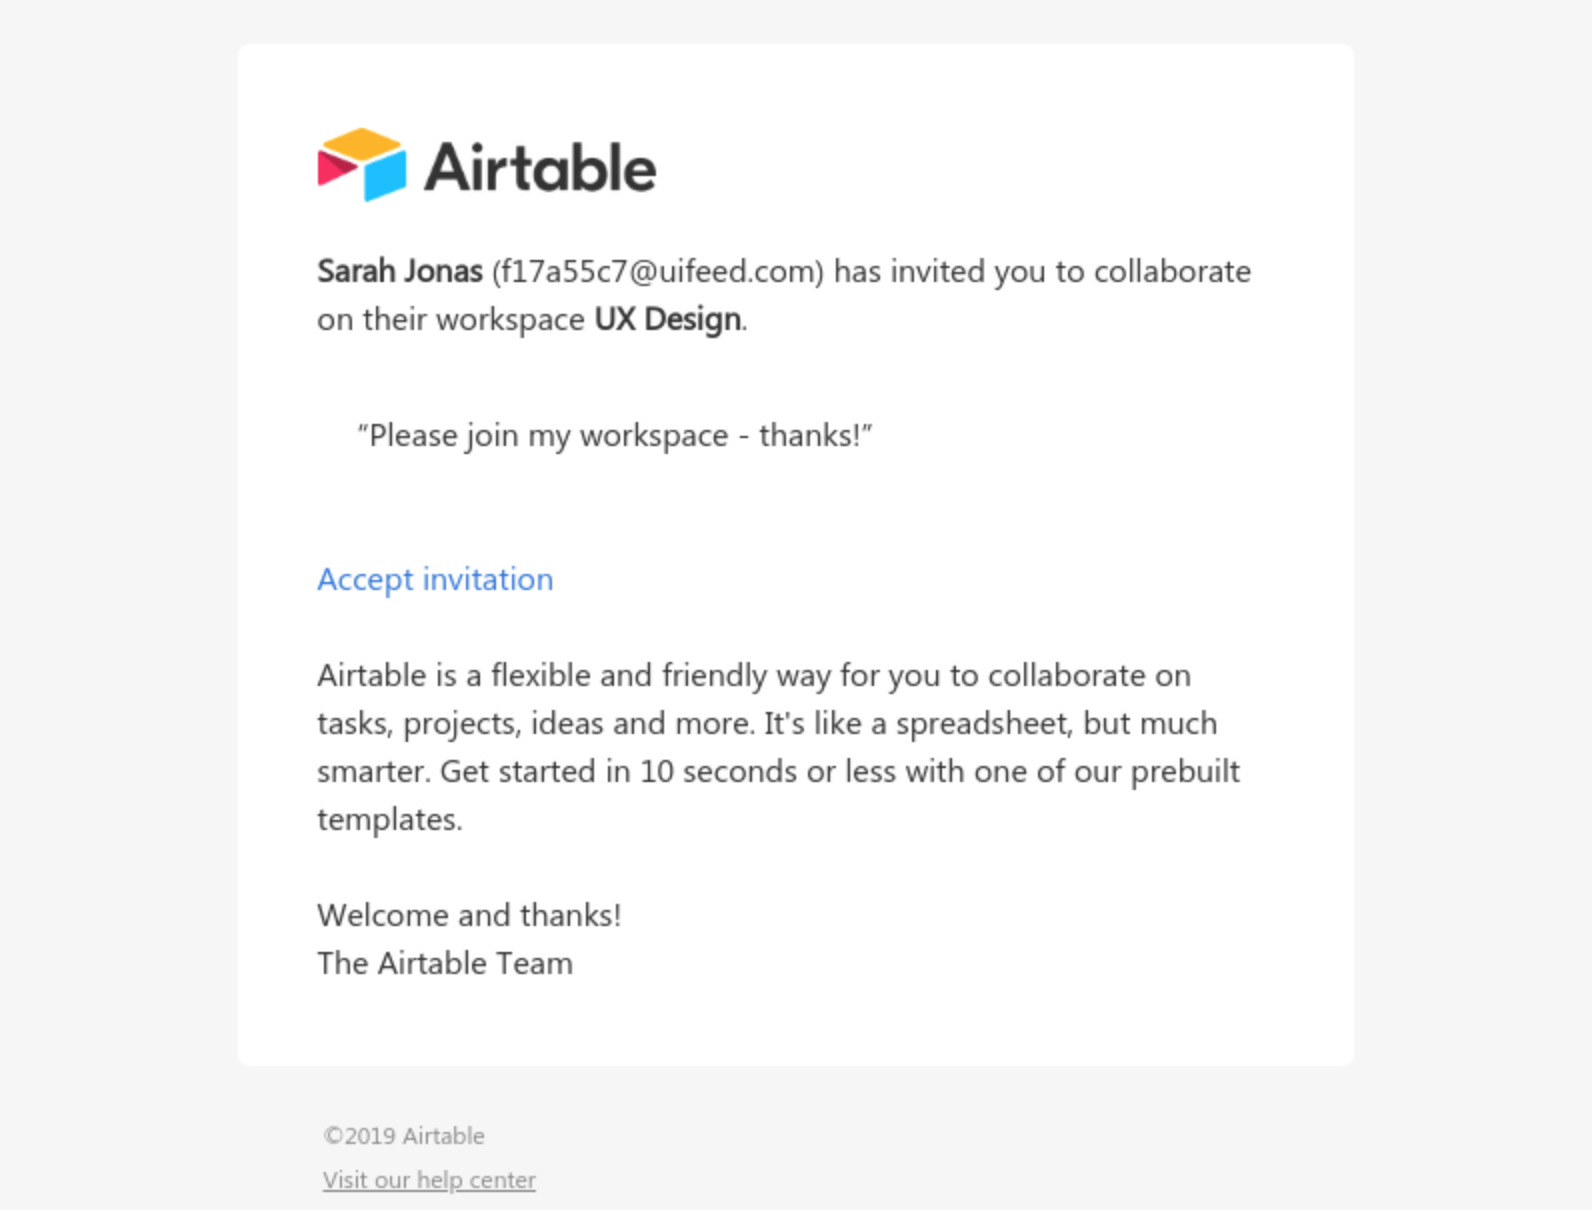 Airtable invite email